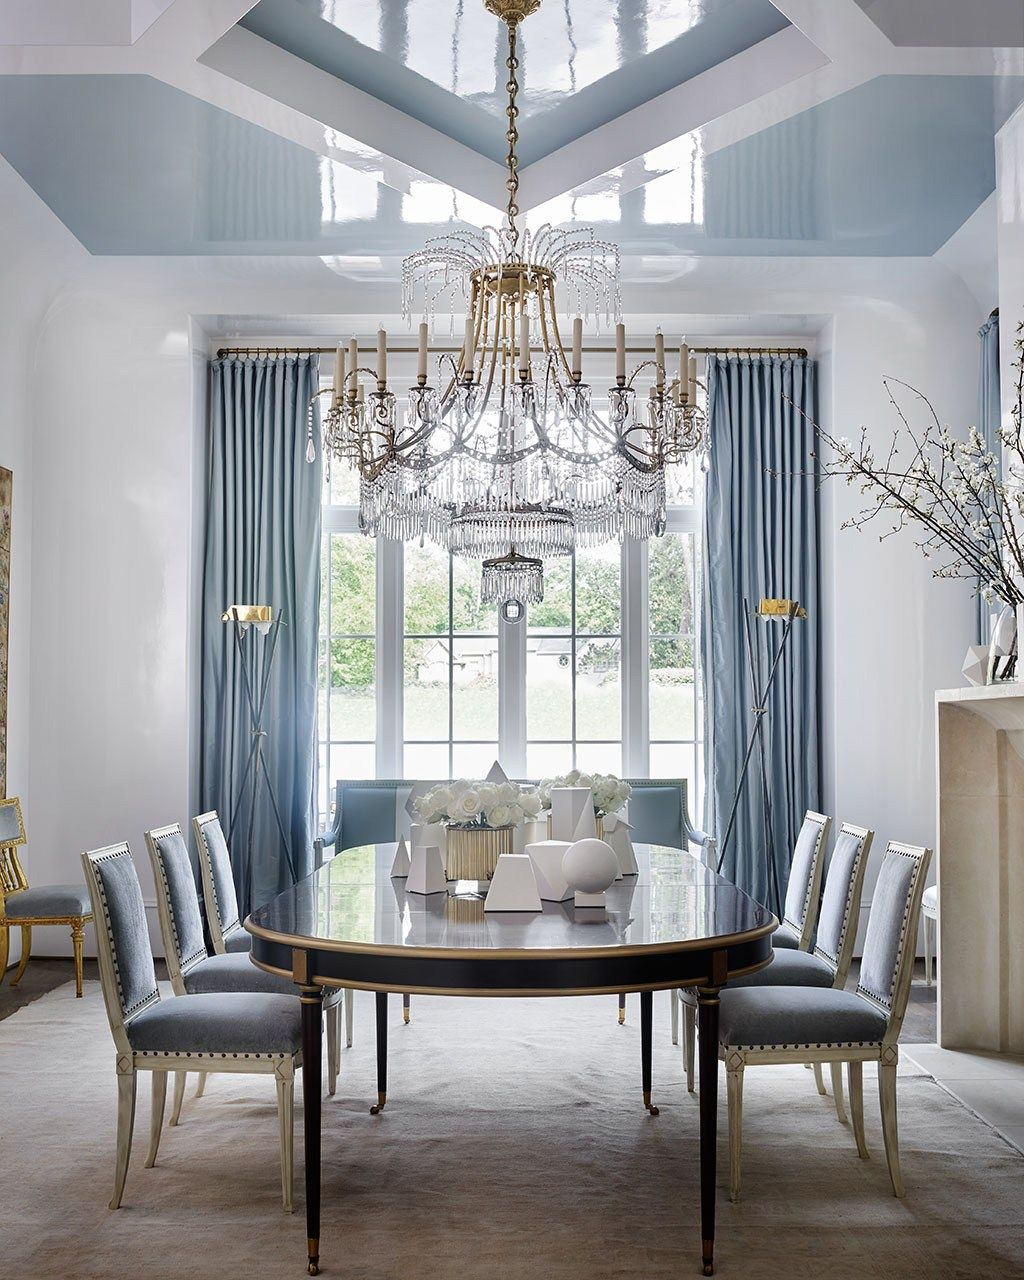 Decorating Blog Buyer Select Fashion Home Decor Dining Room Blue Luxury Dining Room Blue Ceilings Beautiful dining room ceilings